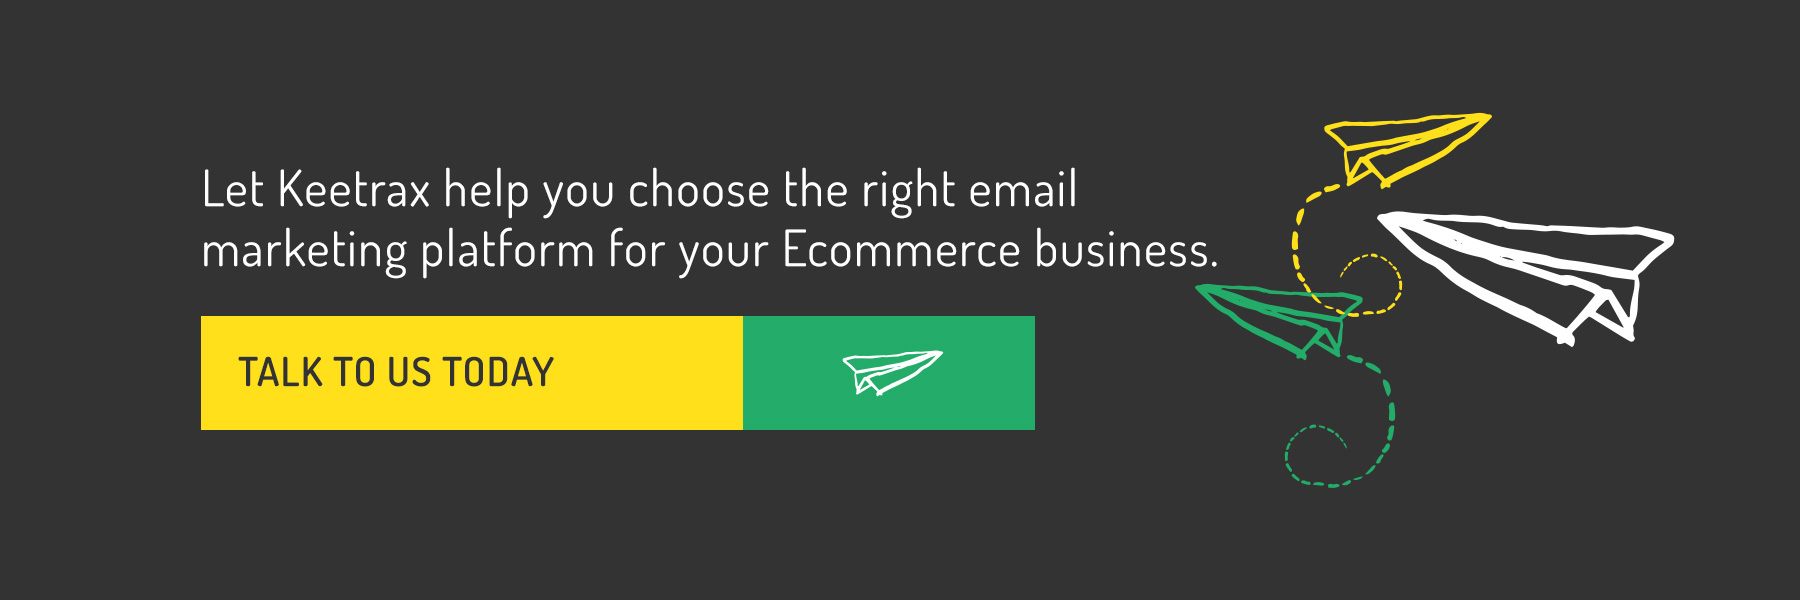 Let Keetrax help you choose the right email marketing platform for your Ecommerce business